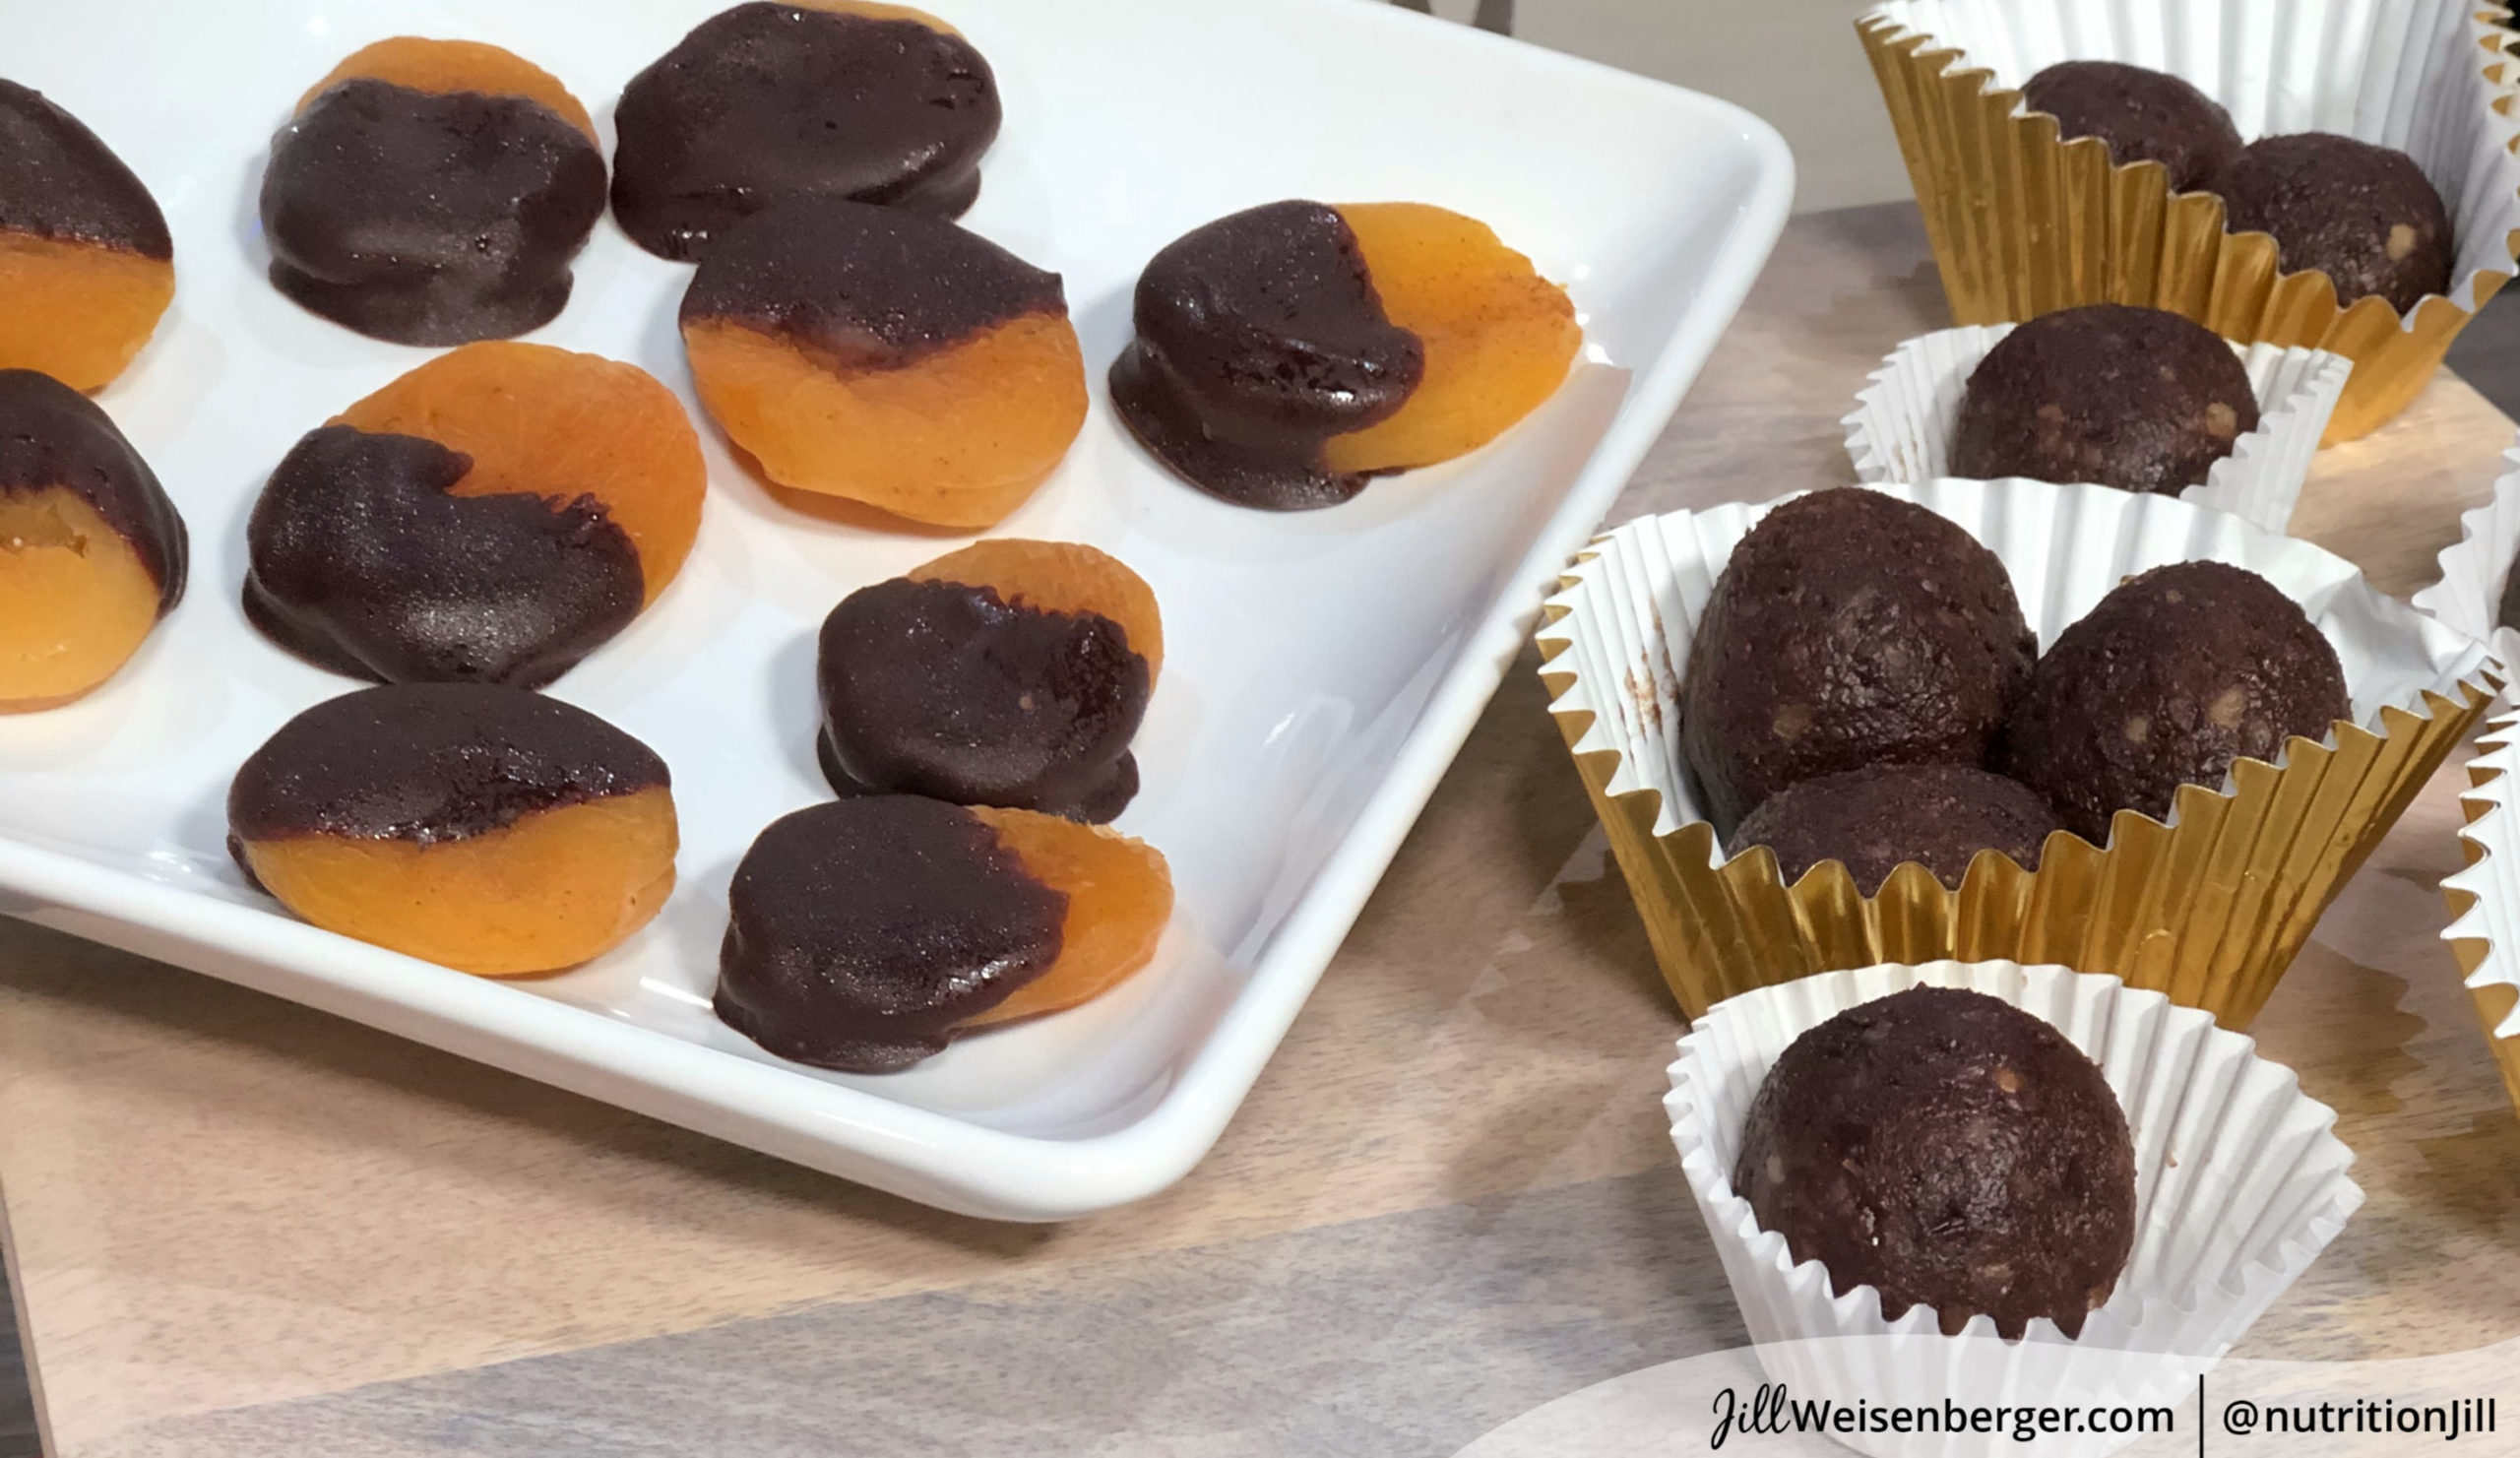 homemade healthy chocolates with fruit and nuts